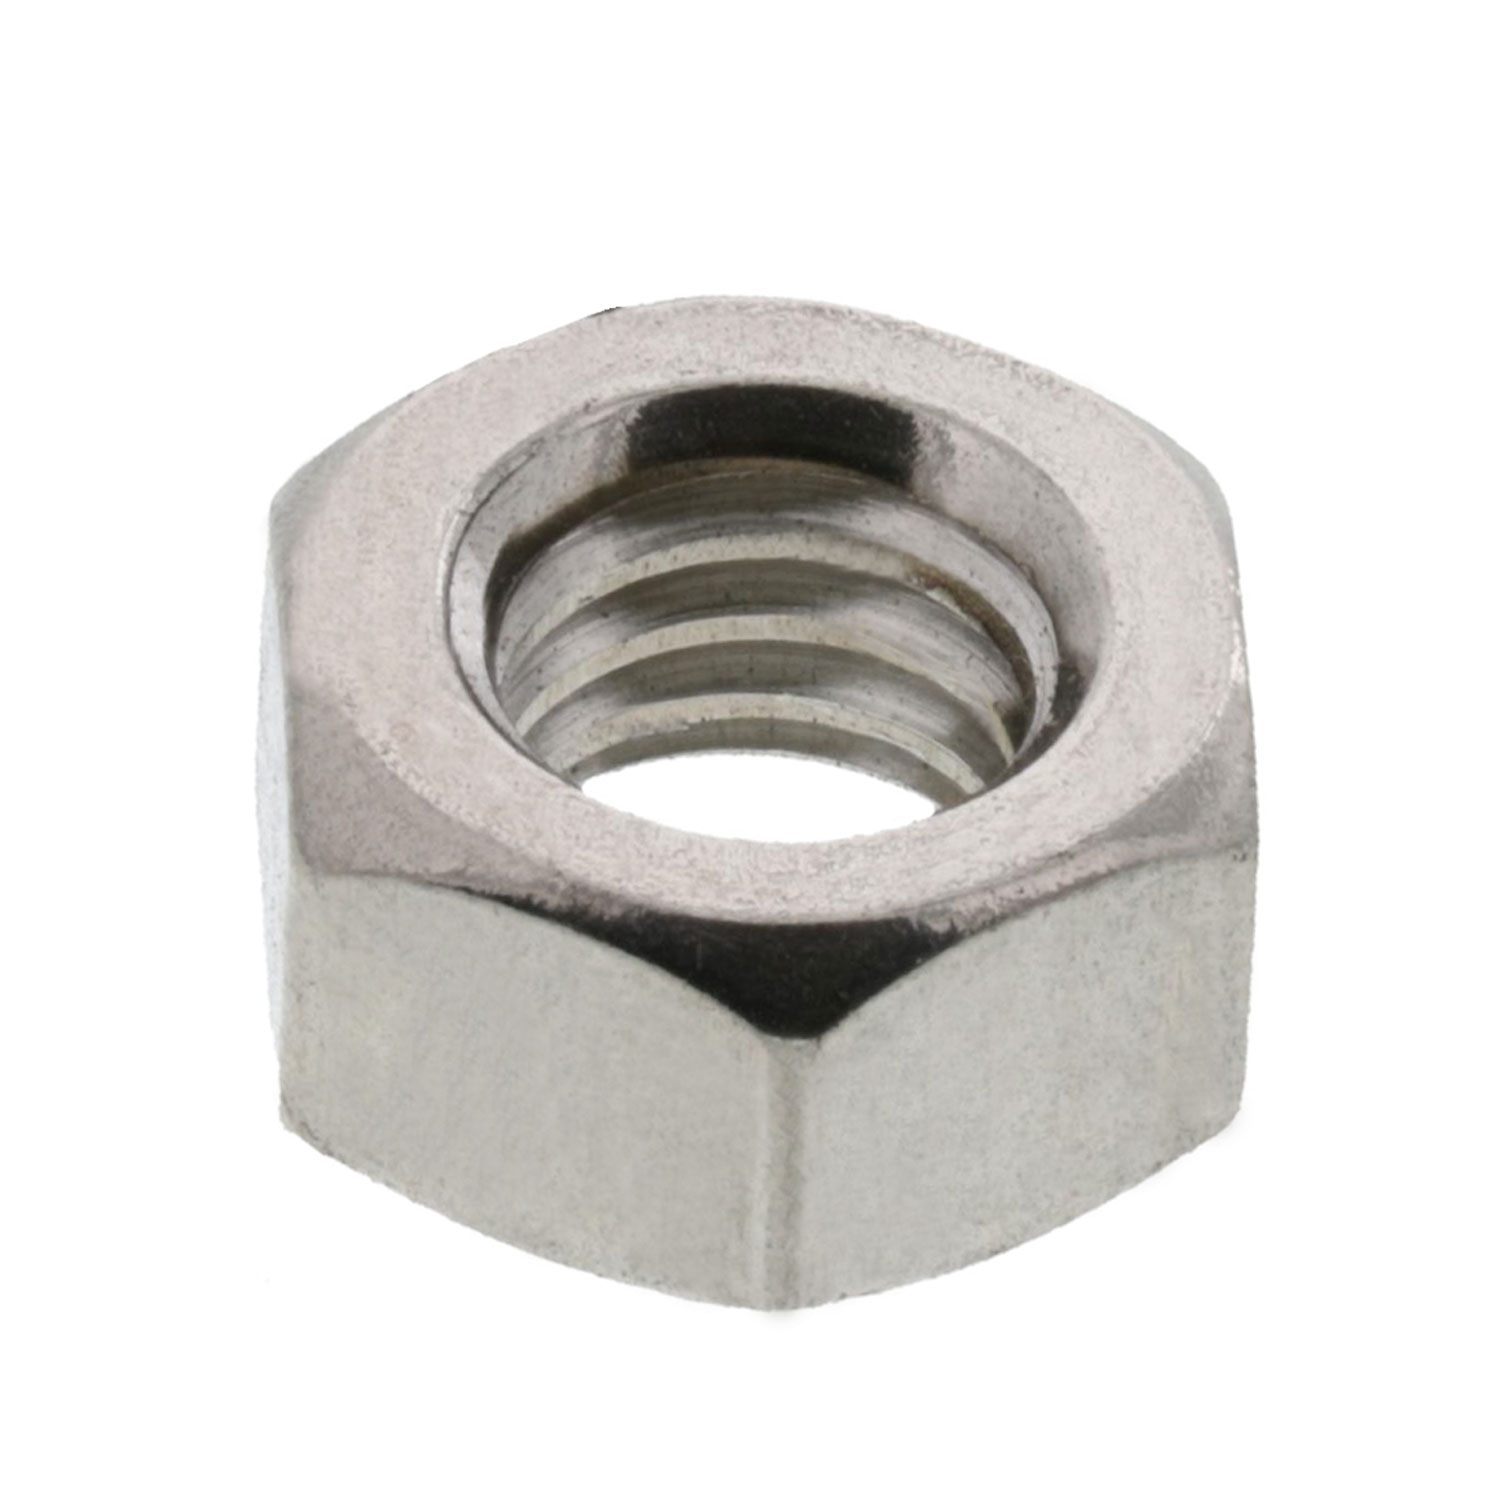 5 16 18 Tpi Stainless Steel Hex Nut Left Hand Threads